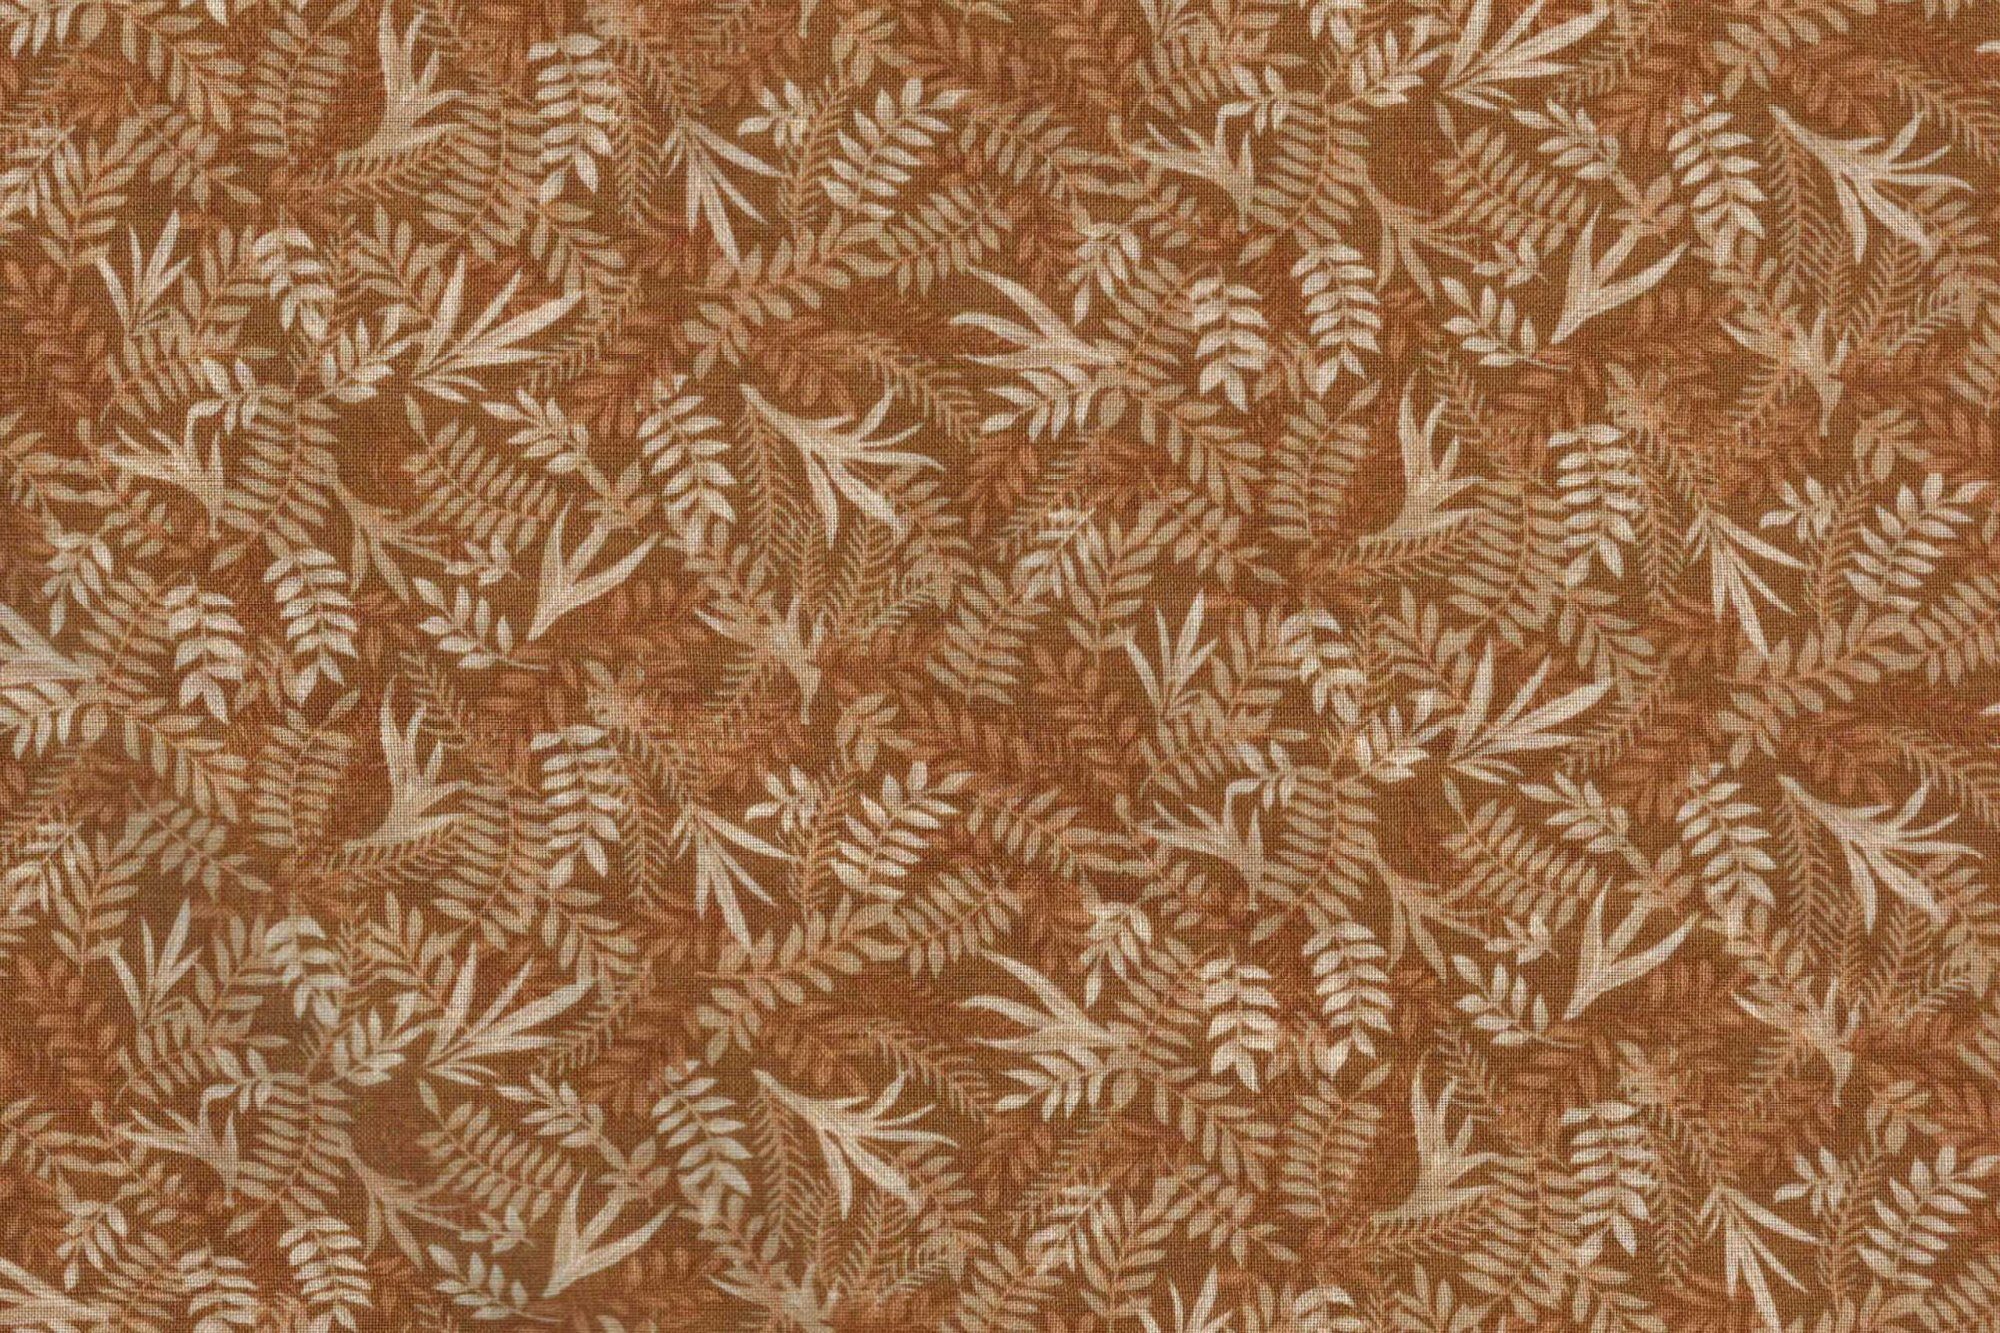 G FABRIC QUILT 92099 109-FLOWERS